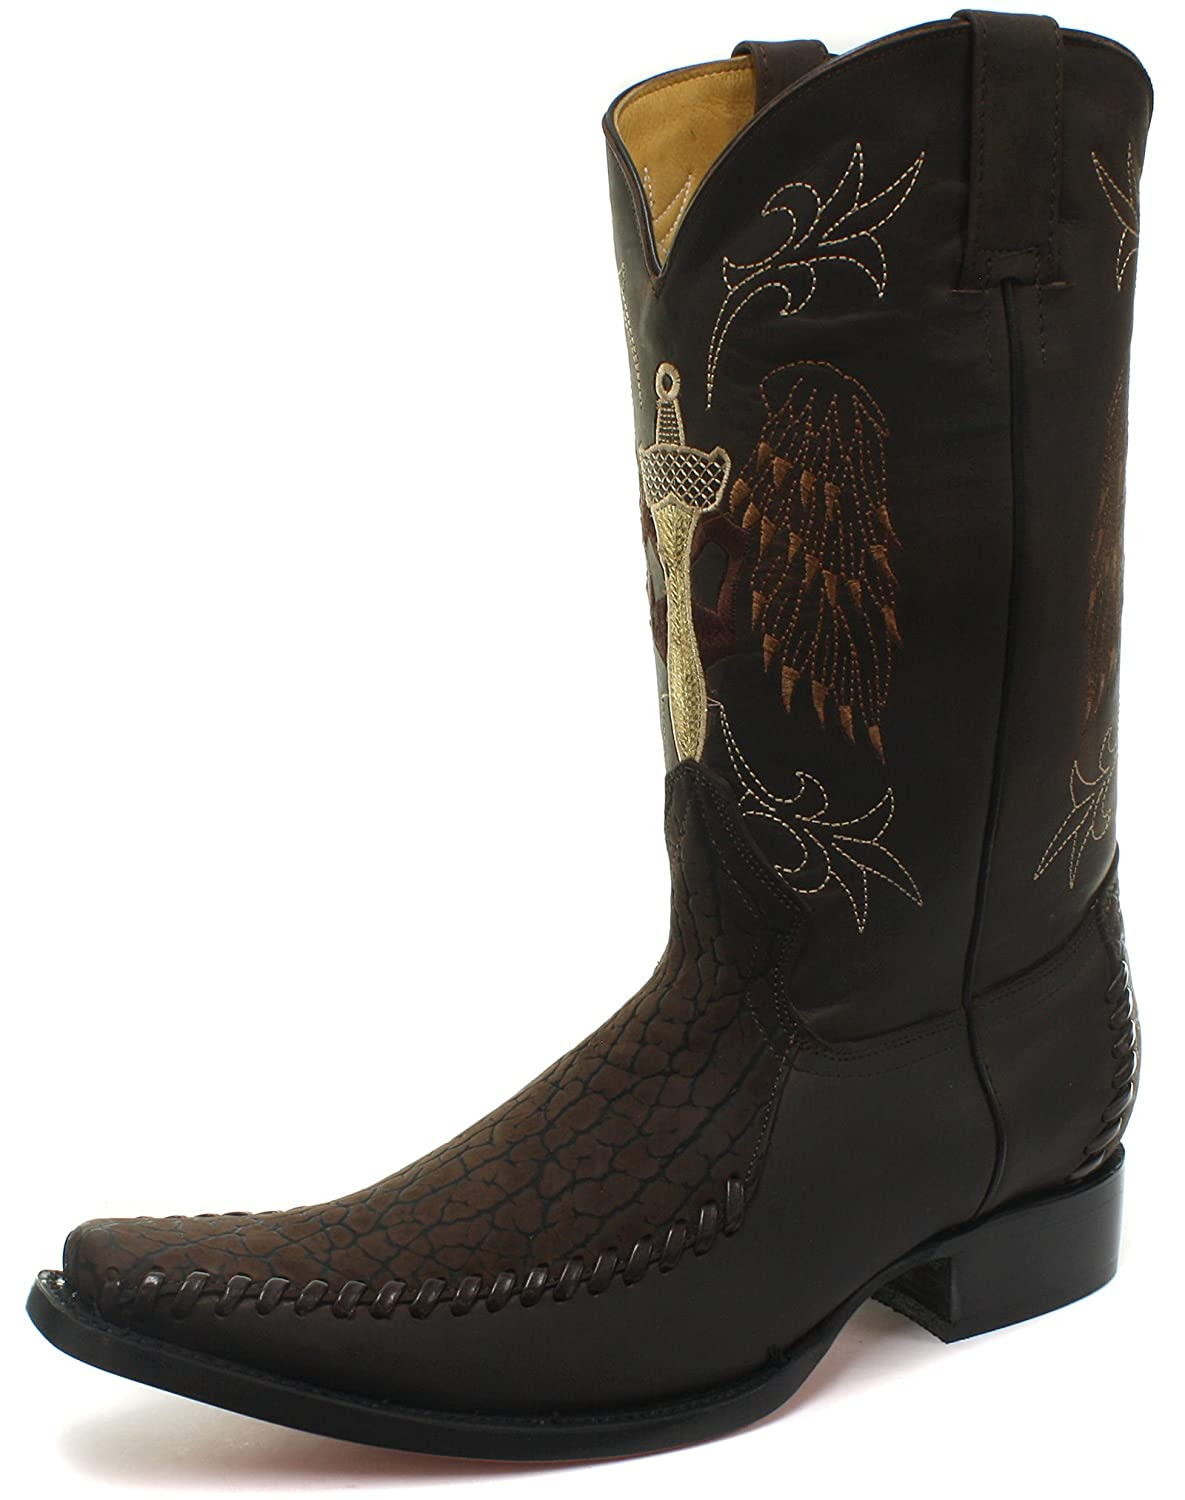 Grinders Kansas Brown Mens Leather Western Cowboy Boots Size